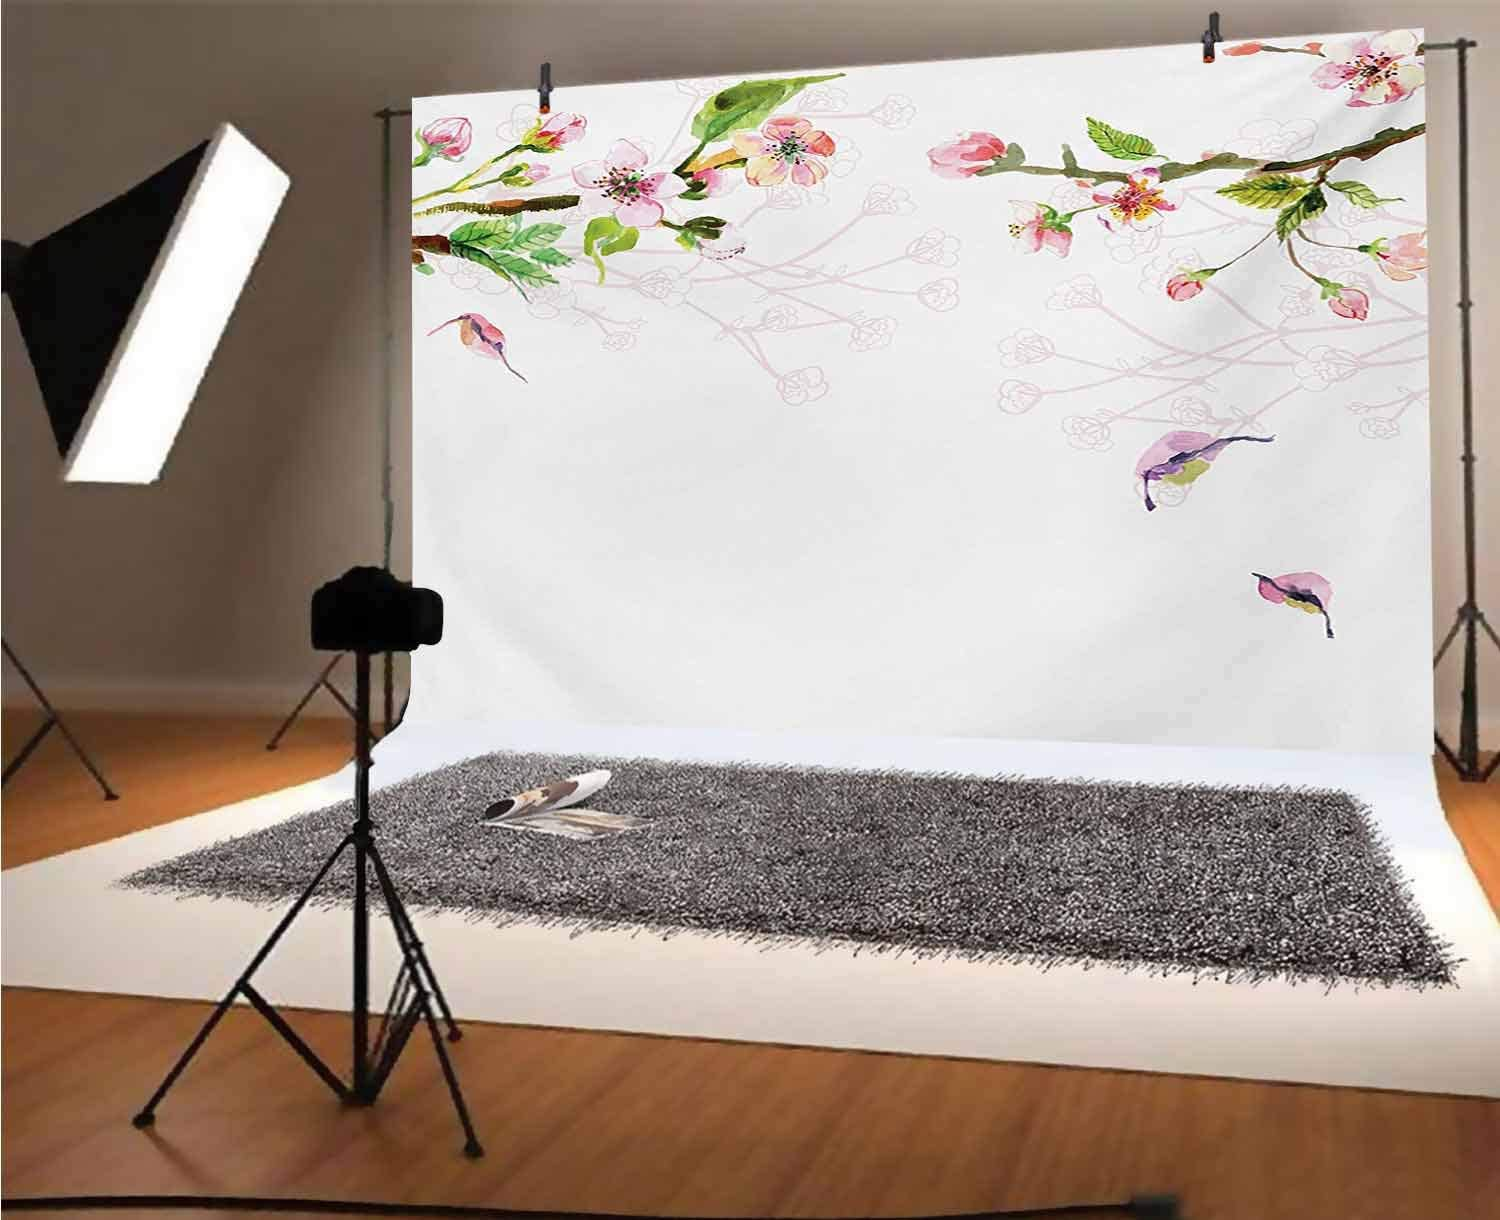 Watercolor 8x6 FT Vinyl Photo Backdrops,Apple Tree Blooming in Spring Season Branches Falling Leaves Romantic Background for Selfie Birthday Party Pictures Photo Booth Shoot